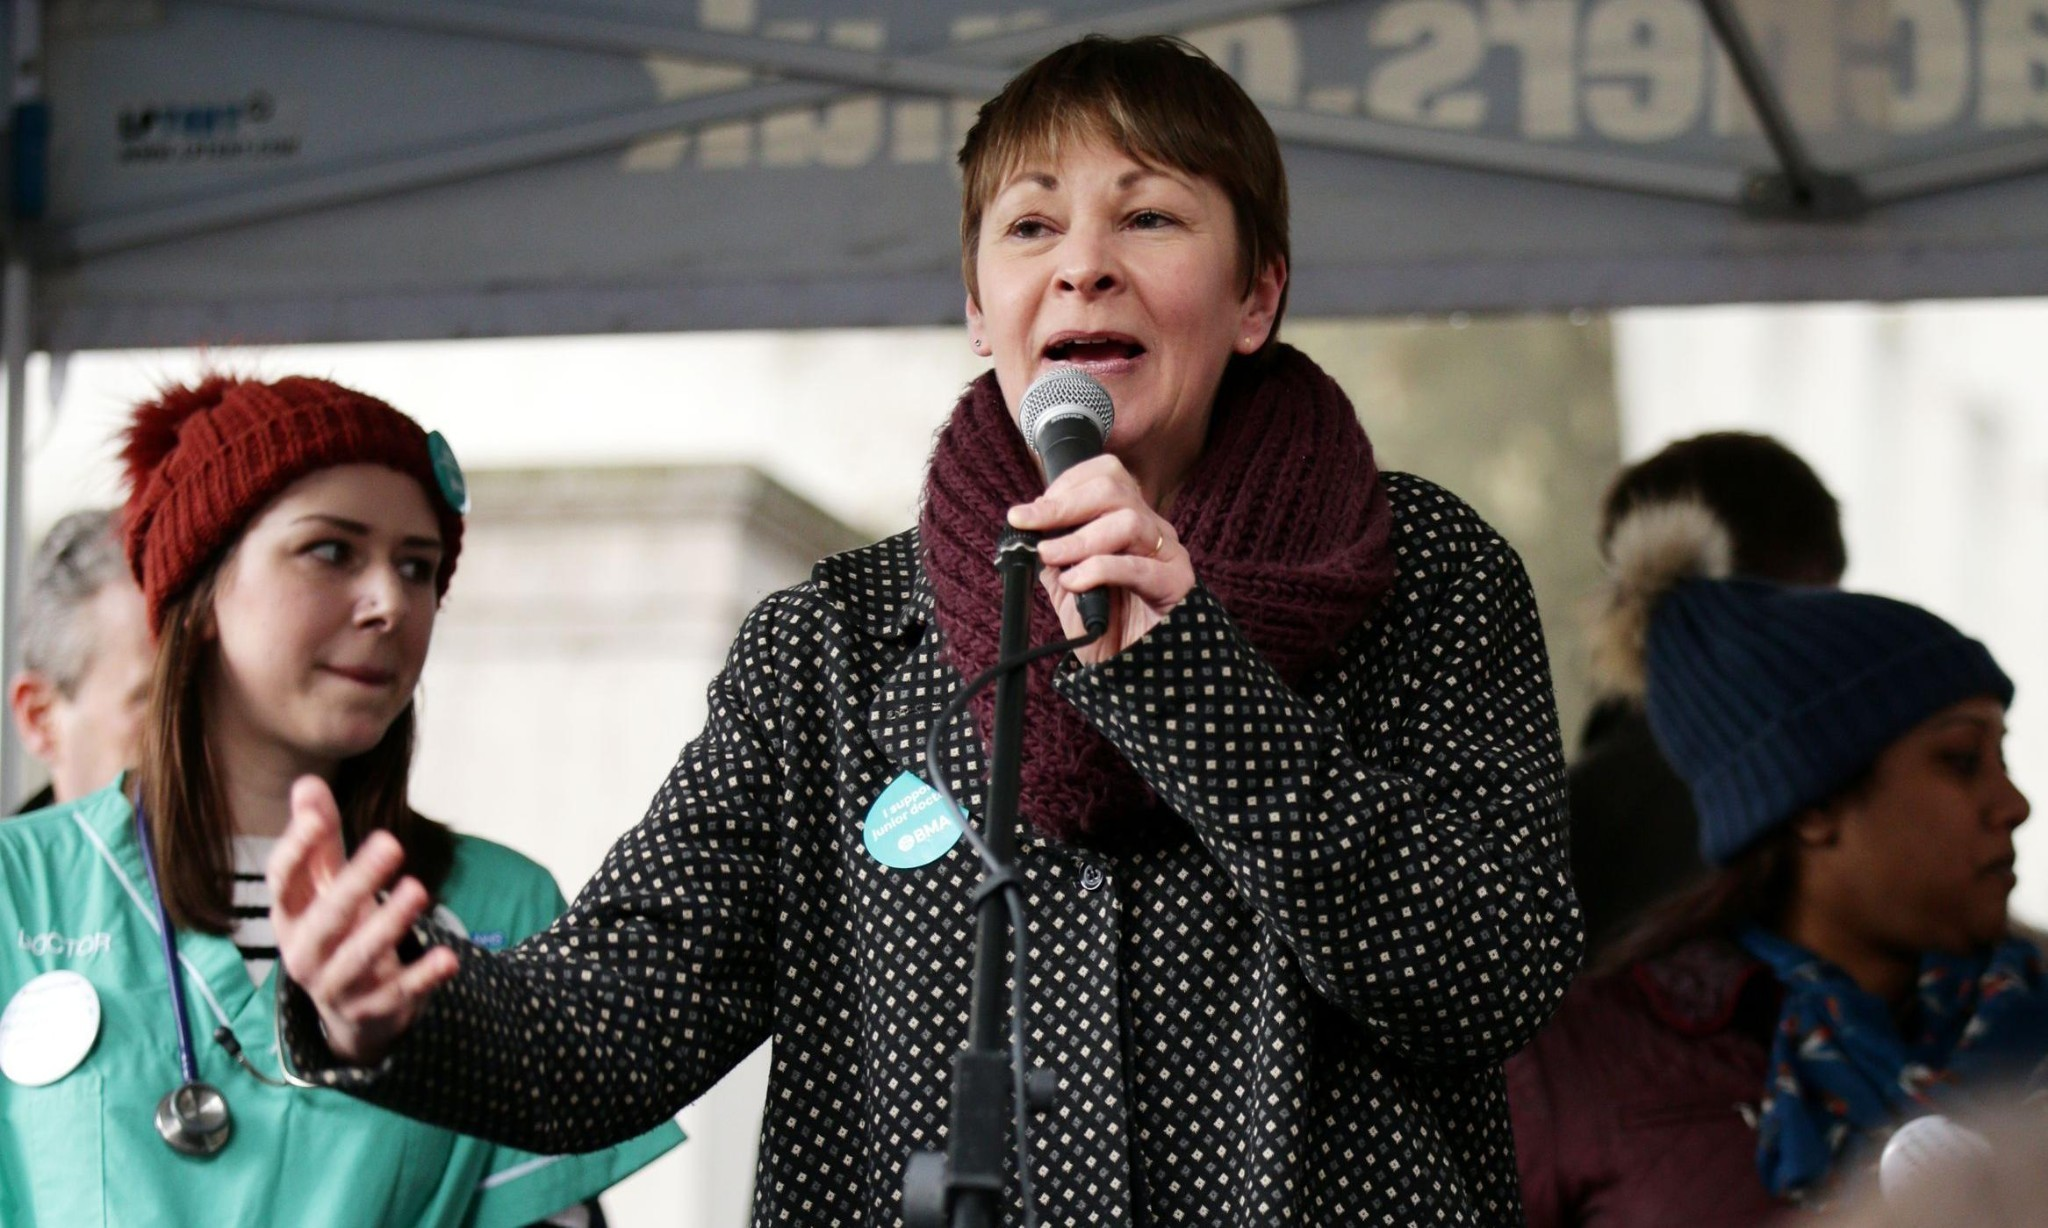 Police anti-extremism unit monitoring senior Green party figures